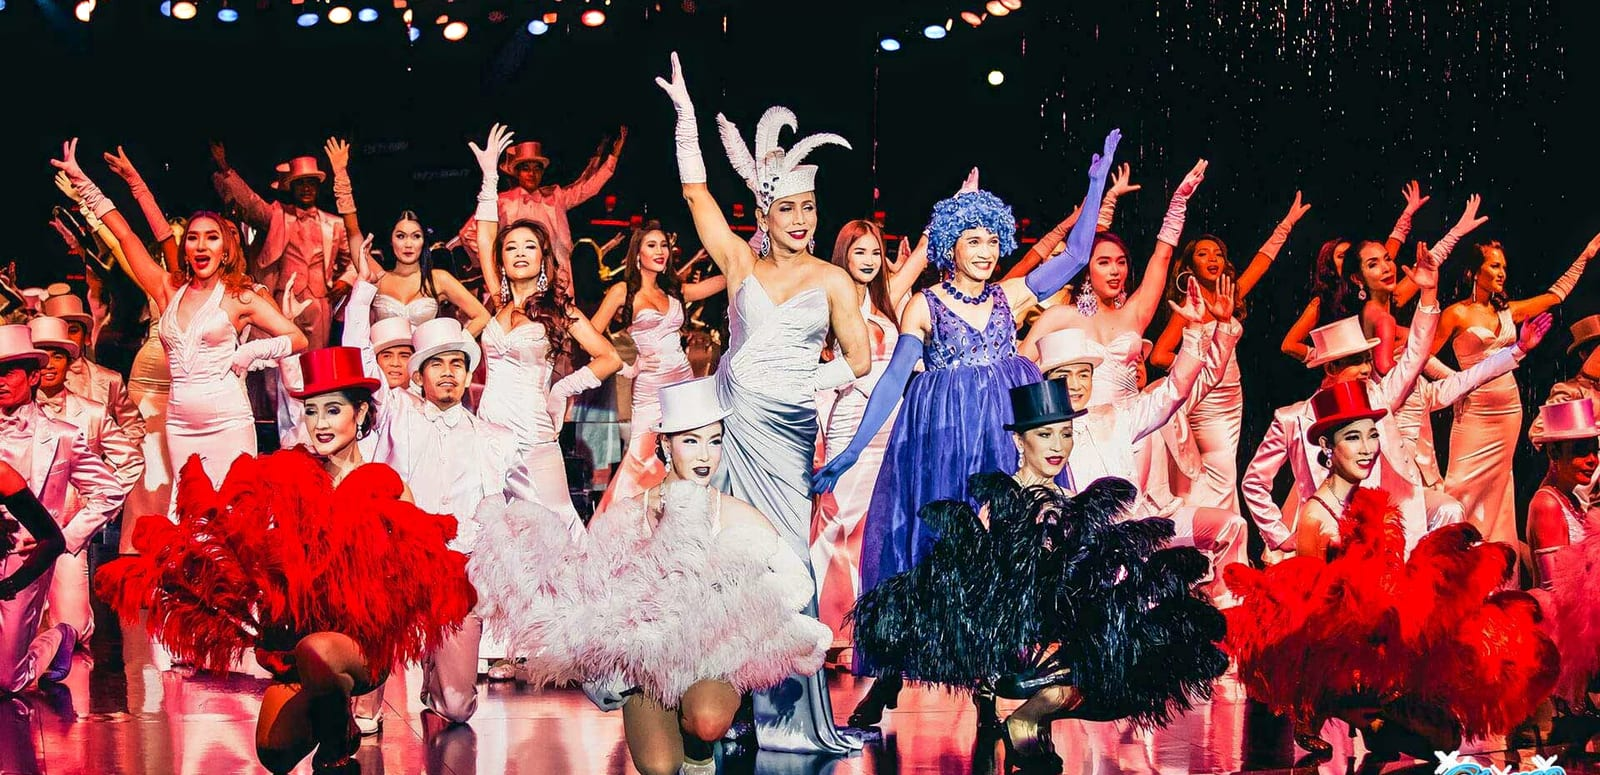 Calypso Cabaret Show Tickets Bangkok, Book & Save 30%